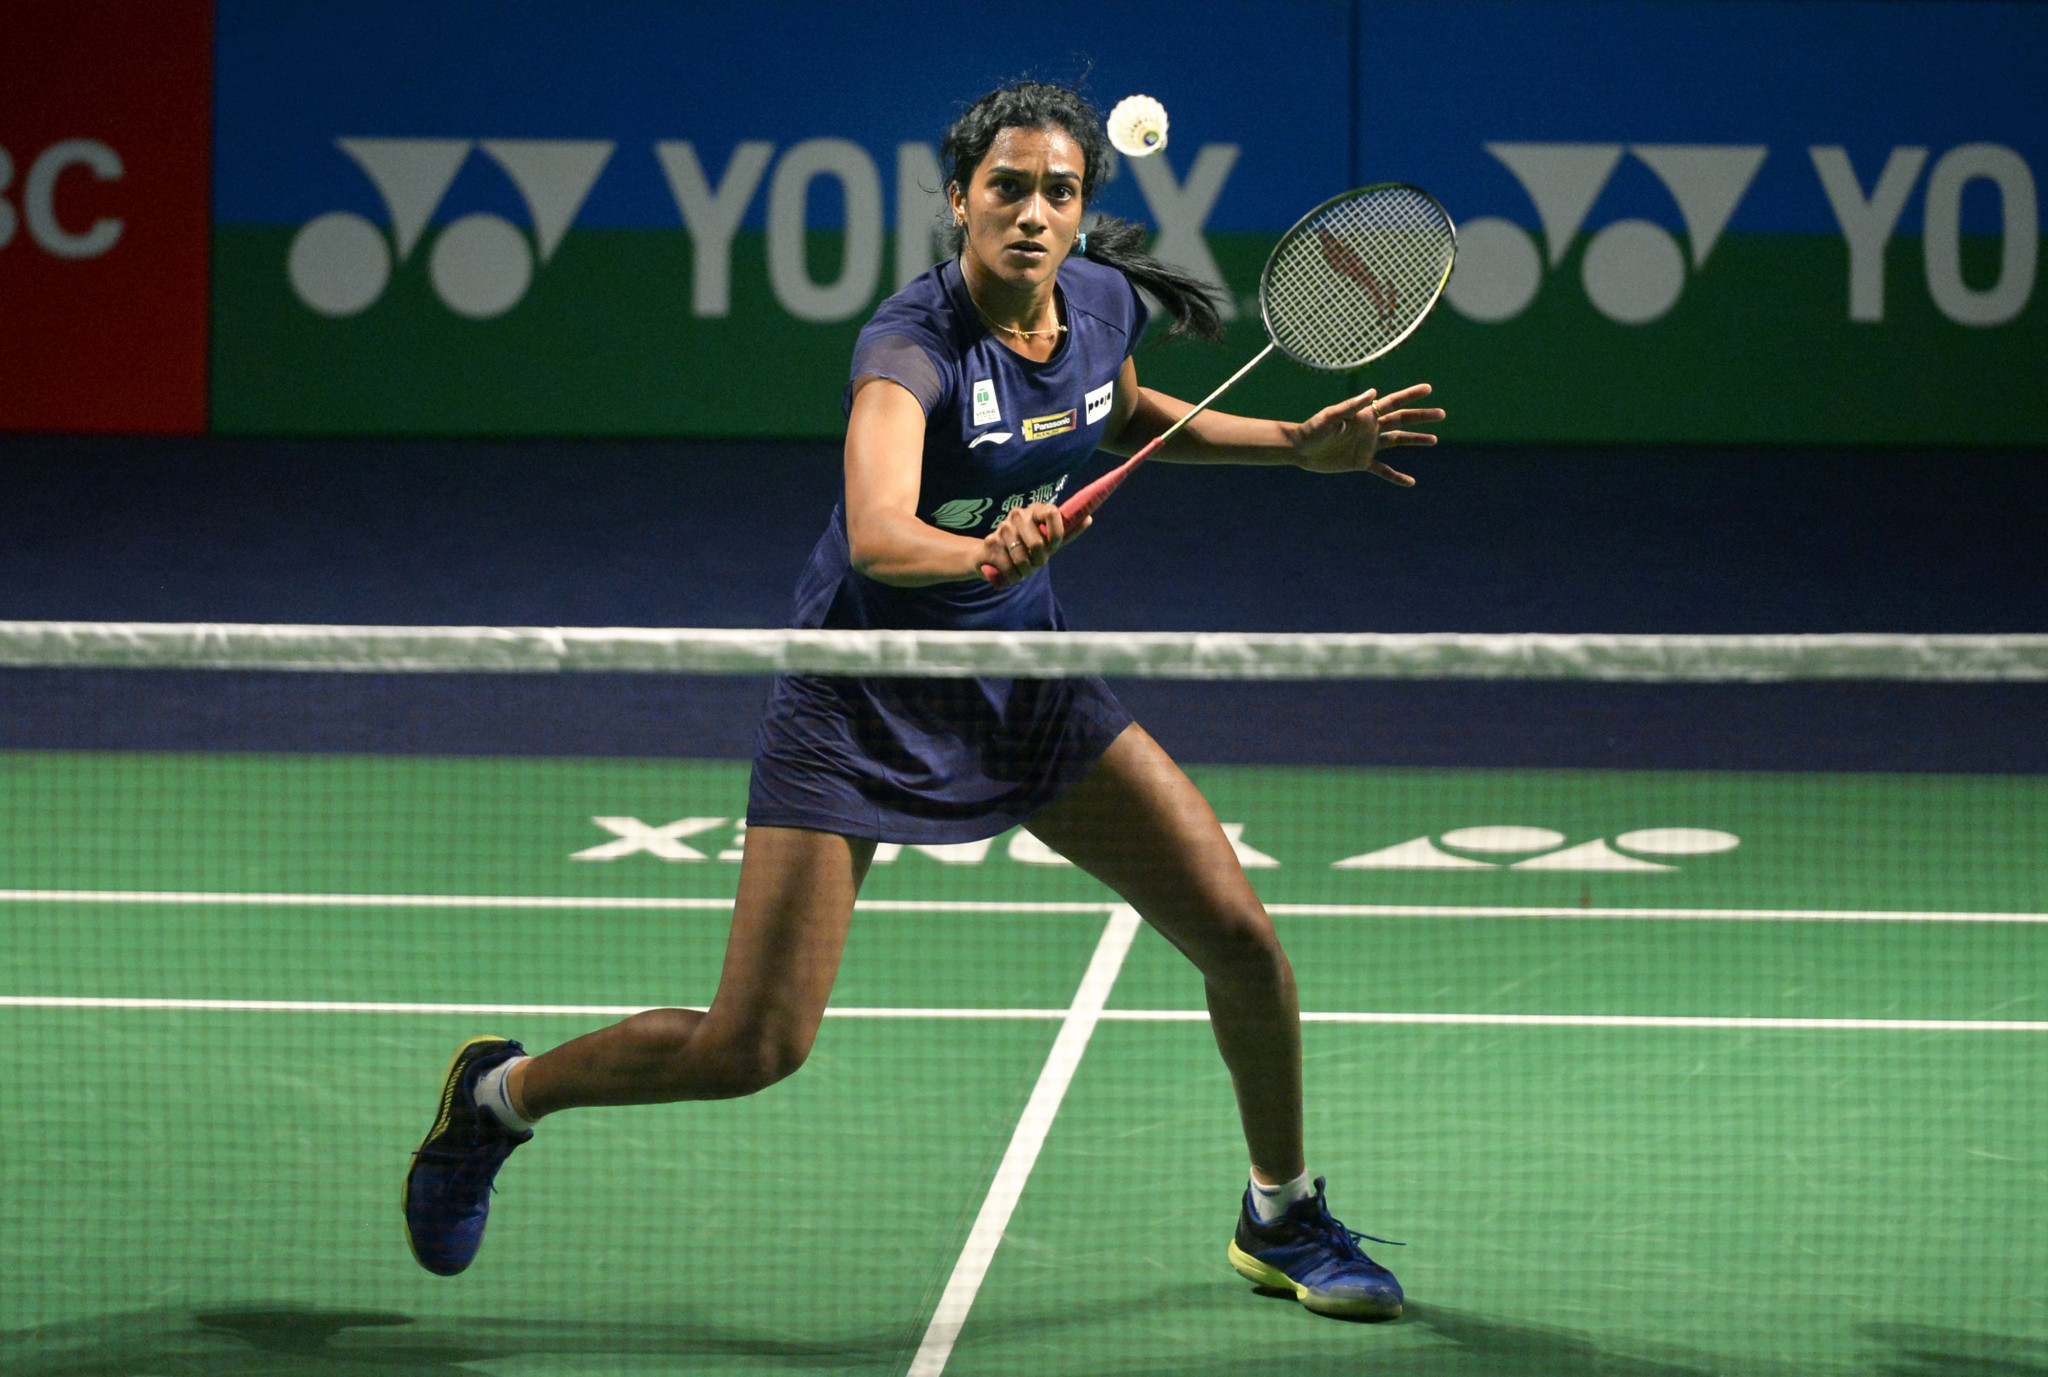 The Indian coach said changes made by the BWF had caused a spike in the number of injuries among players ©Getty Images